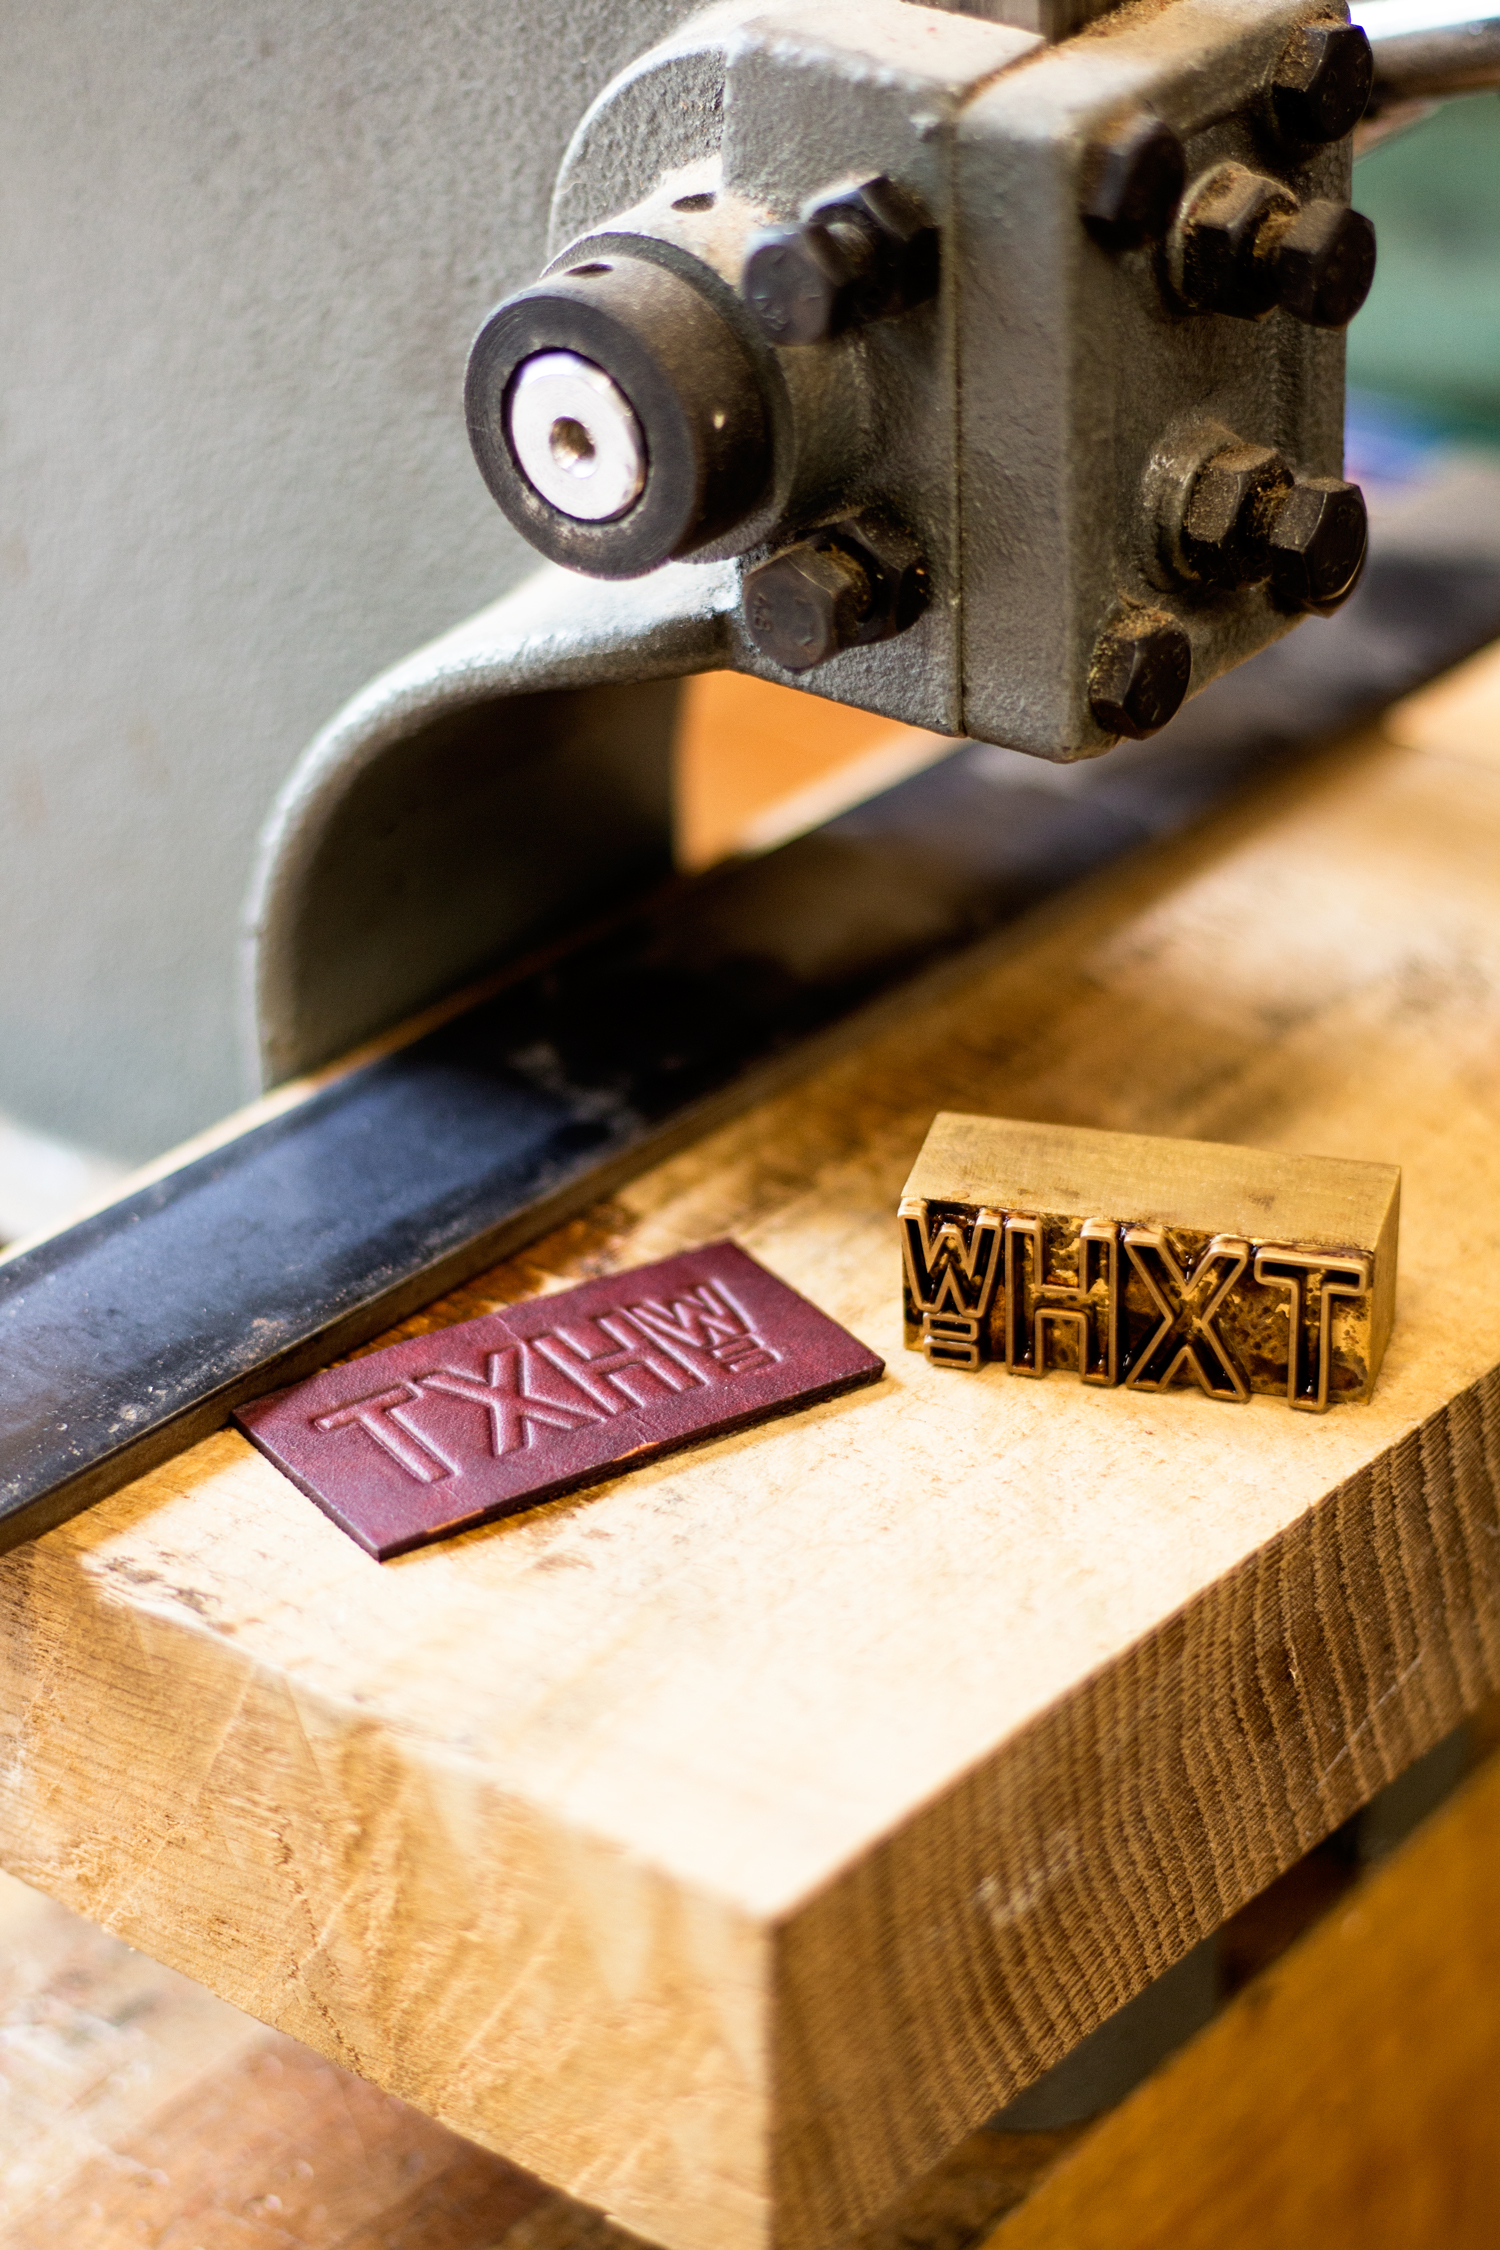 Hot off the press! A freshly stamped leather label, made using a brass stamp and an arbor press.